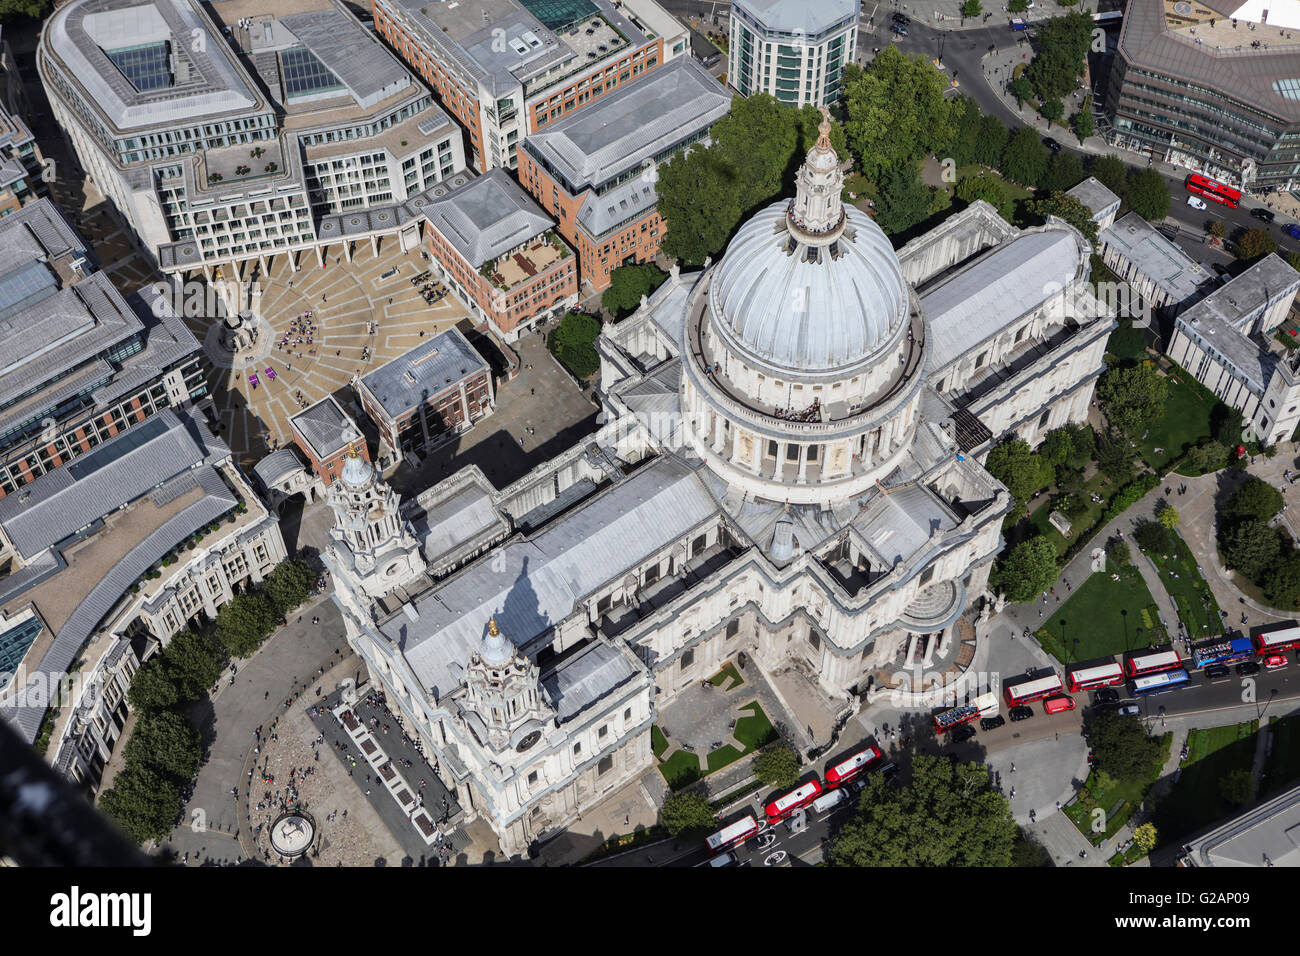 Une vue aérienne de la Cathédrale St Paul, à Londres Photo Stock